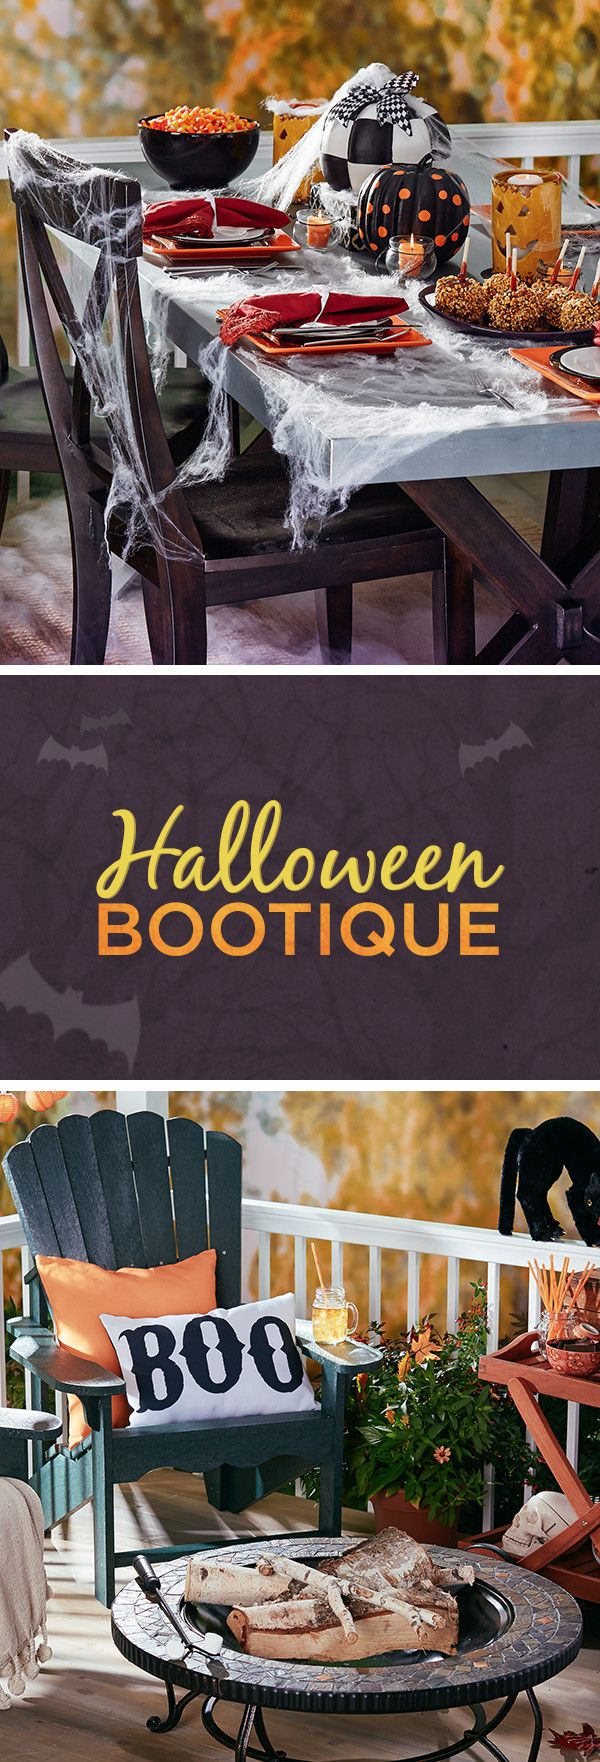 Create creepy curb appeal with this selection of outdoor updates. Festive lights welcome trick-or-treaters in style, while lanterns add ambiance to your backyard hangout. Visit Wayfair and sign up today to get access to exclusive deals everyday up to 70% off. Free shipping on all orders over $49. Halloween sale ends 10/31/15.